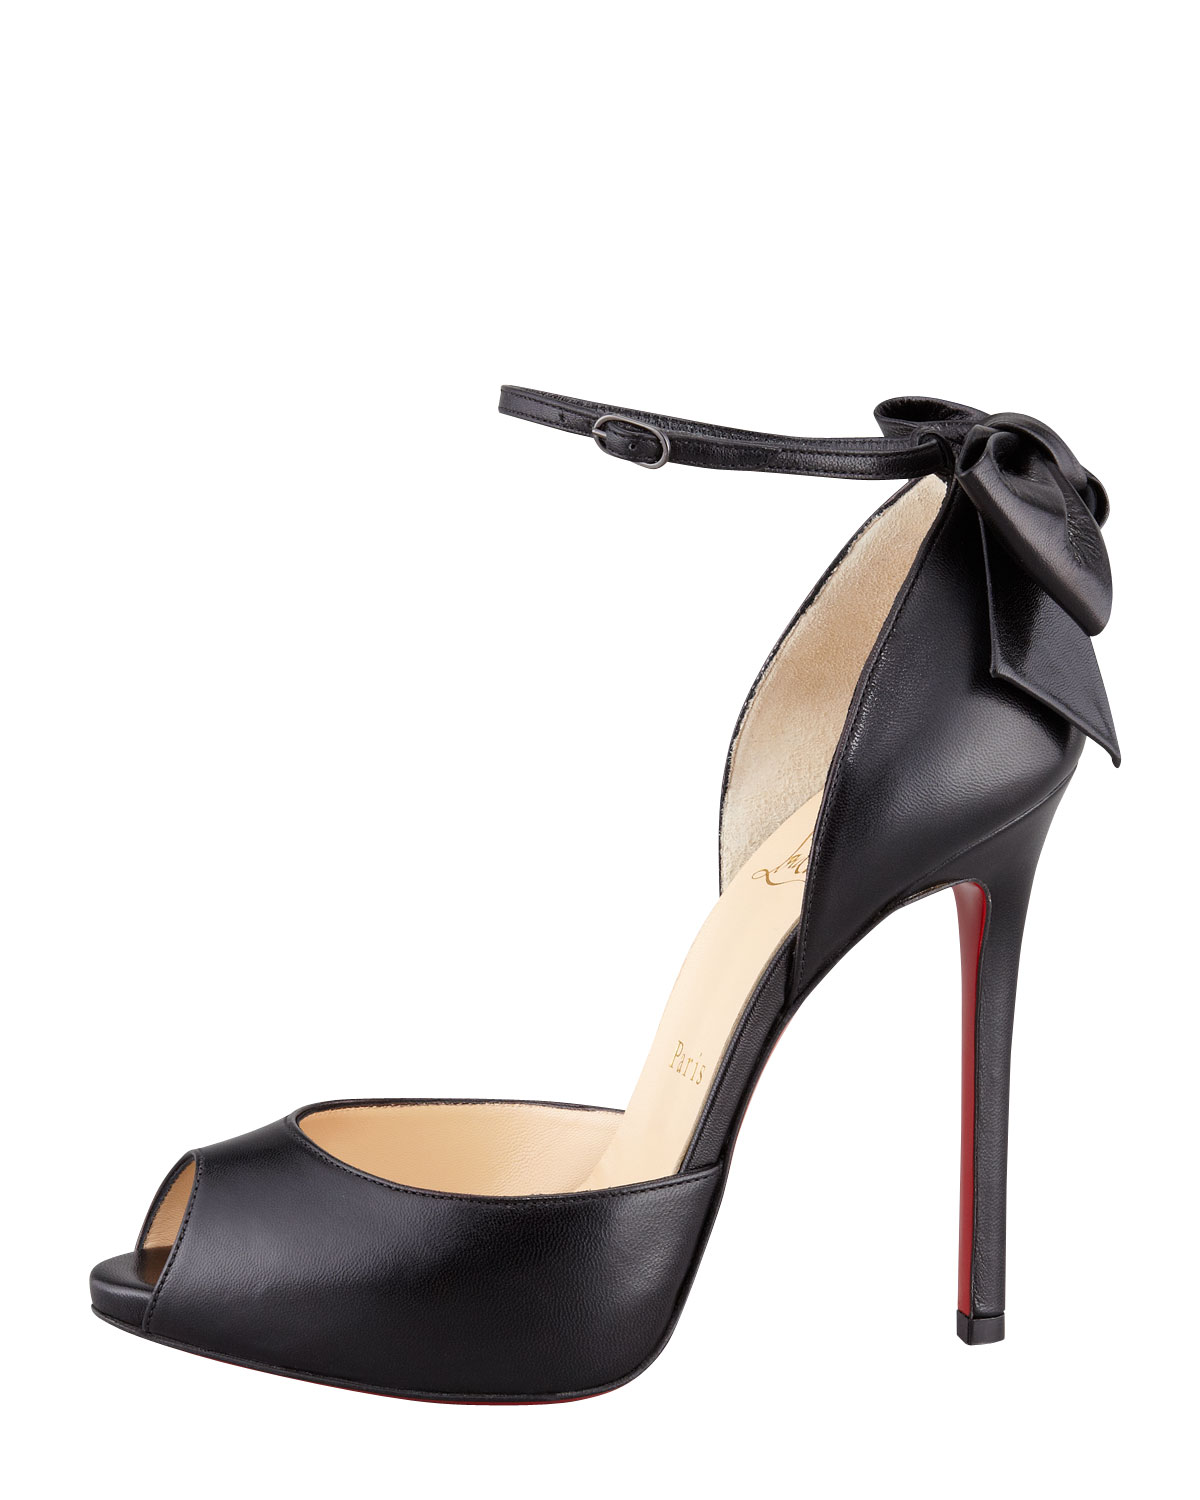 bec021b34c17 Lyst - Christian Louboutin Dos Noeud Backbow Dorsay Red Sole Pump ...